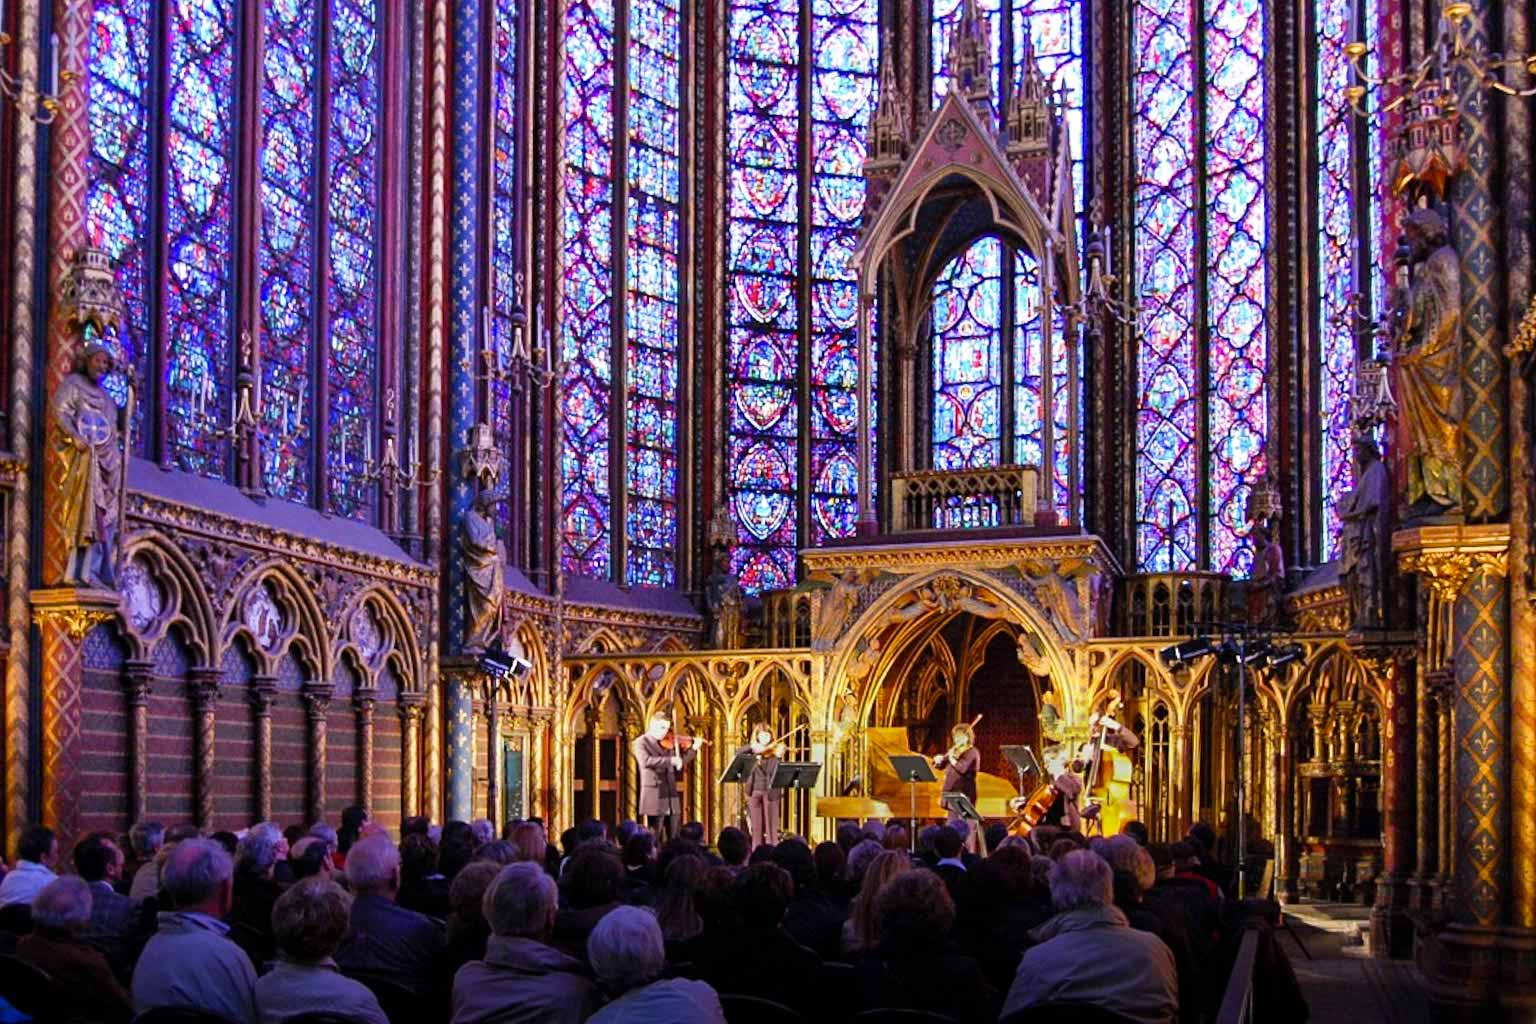 Concert in the Sainte-Chapelle